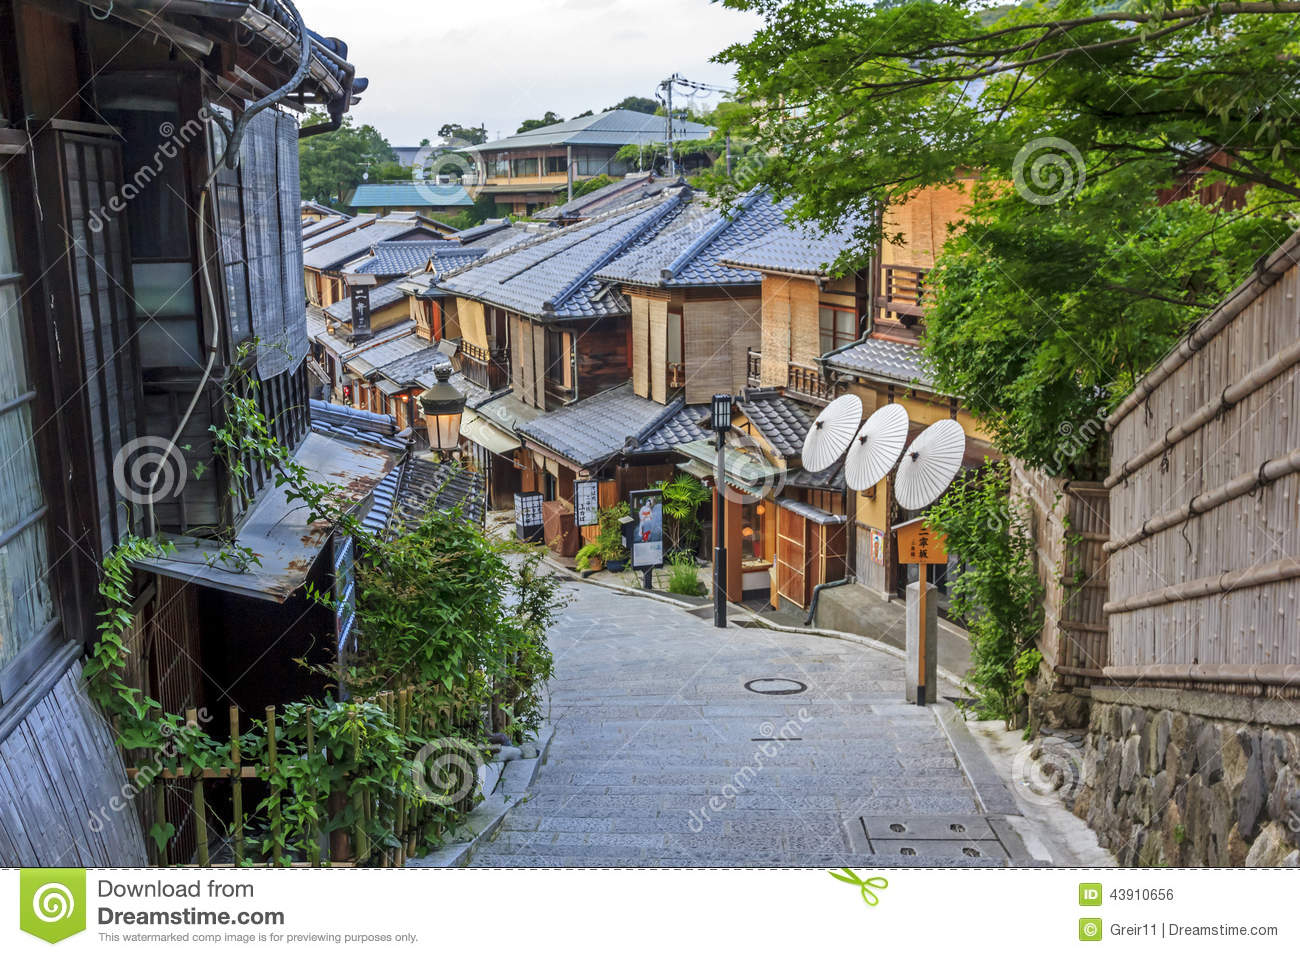 Beautiful Japanese House beautiful old houses in ninen-zaka street, kyoto, japan. editorial